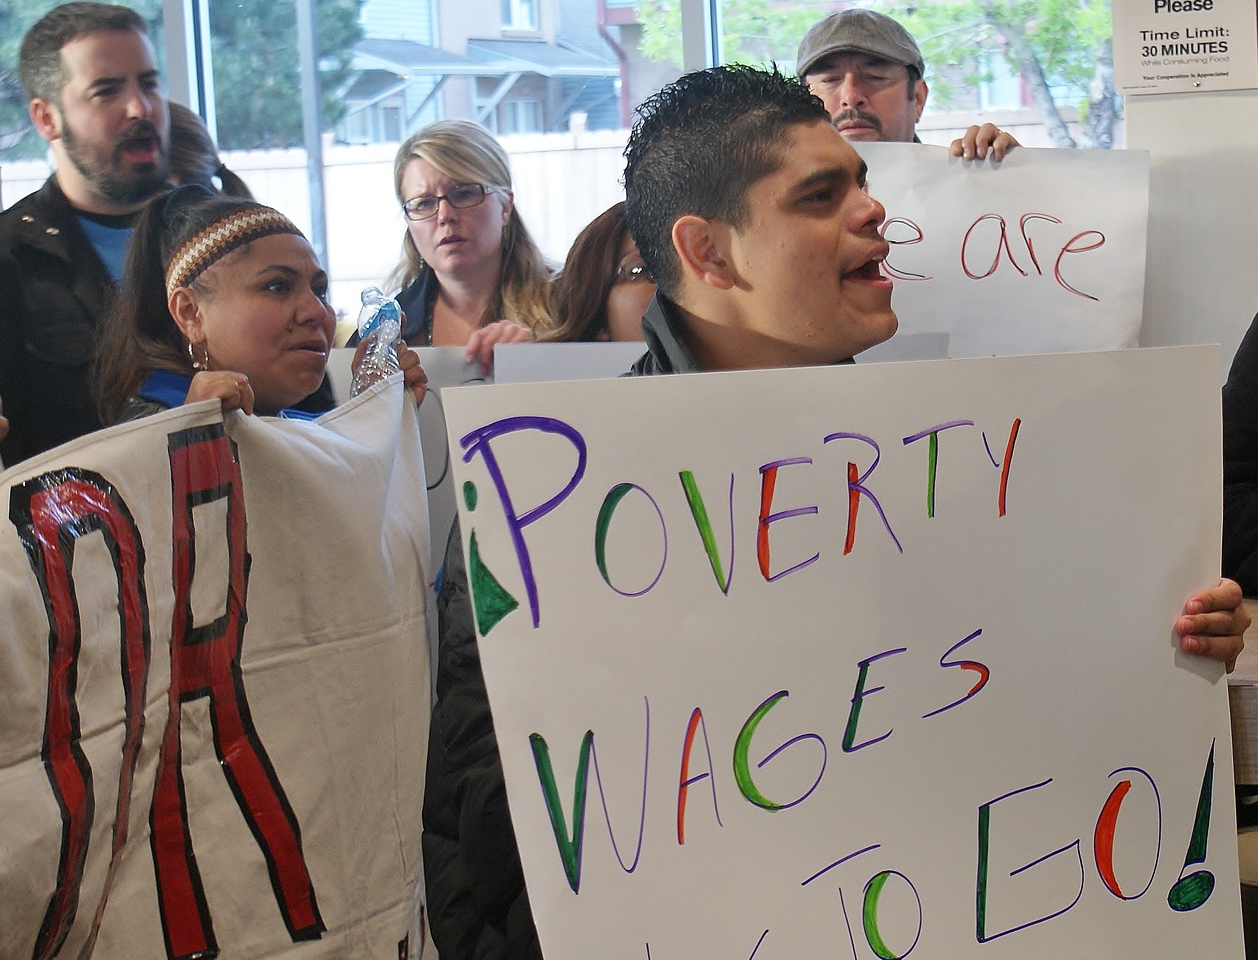 fast-food-workers-protest-24